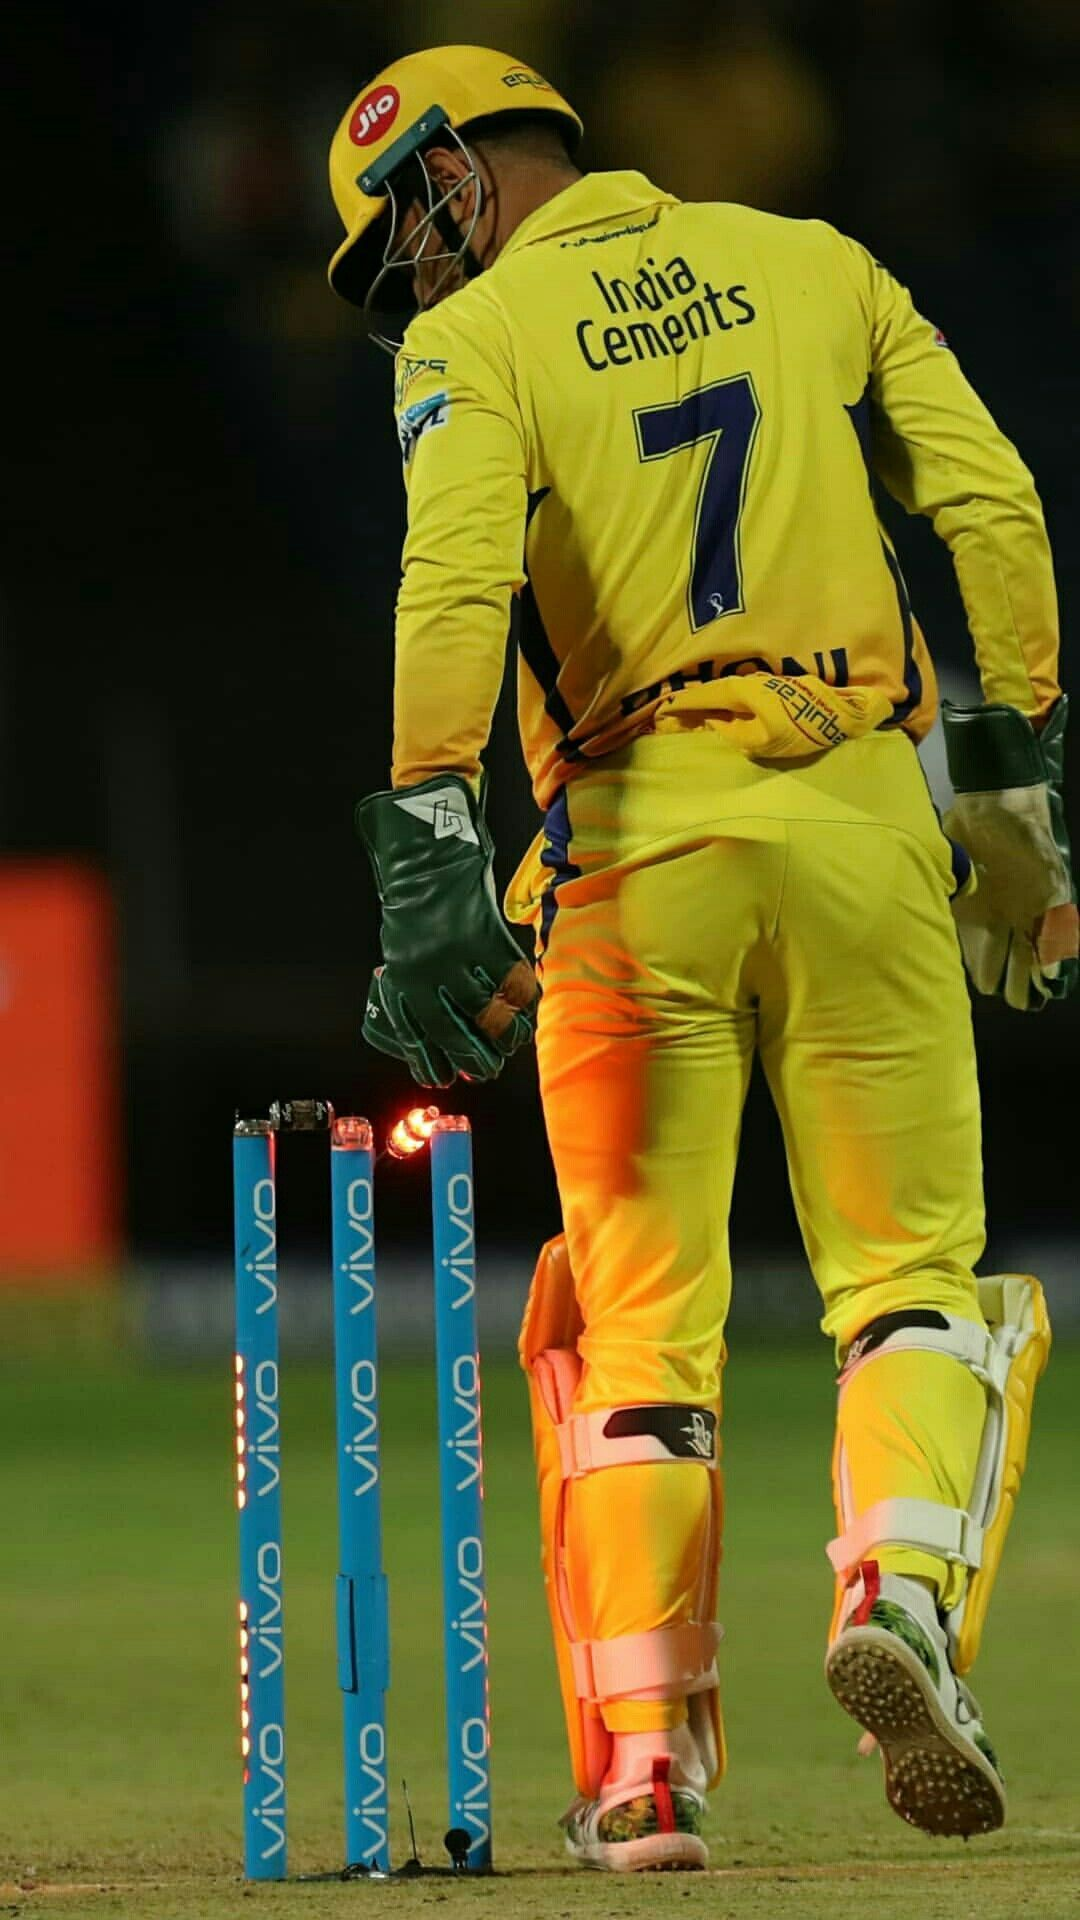 Csk Wallpaper Hd For Iphone Wallpaper On Hupages Com If You Like It Dont Forget Save It Or Repin It Have Dhoni Wallpapers Ms Dhoni Wallpapers Ms Dhoni Photos